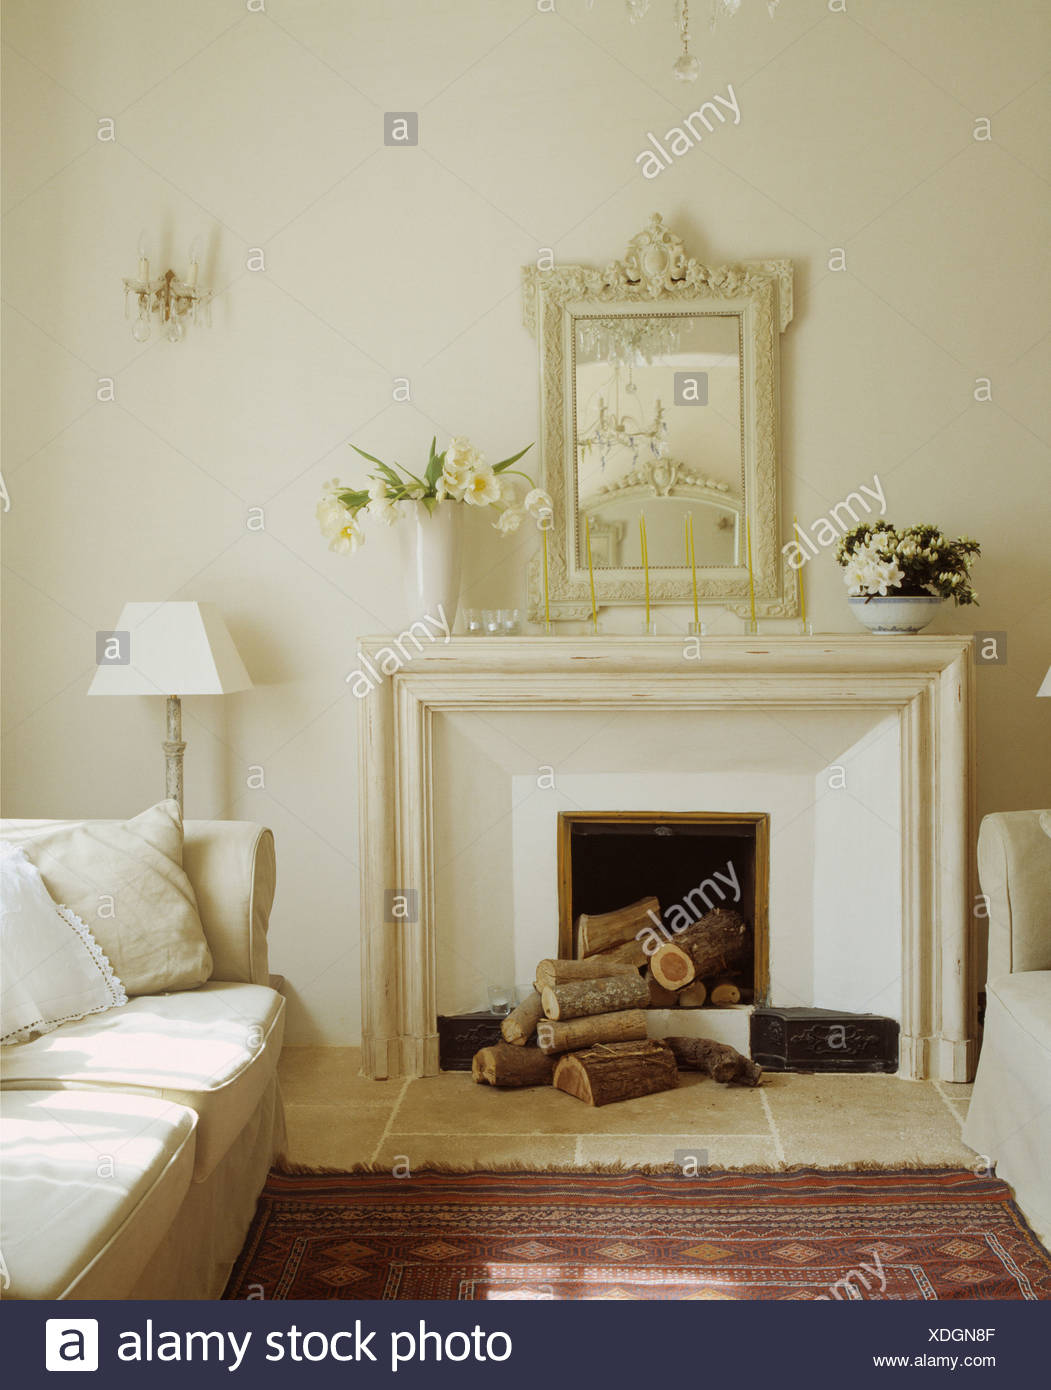 White painted craved mirror above simple fireplace with logs in ...